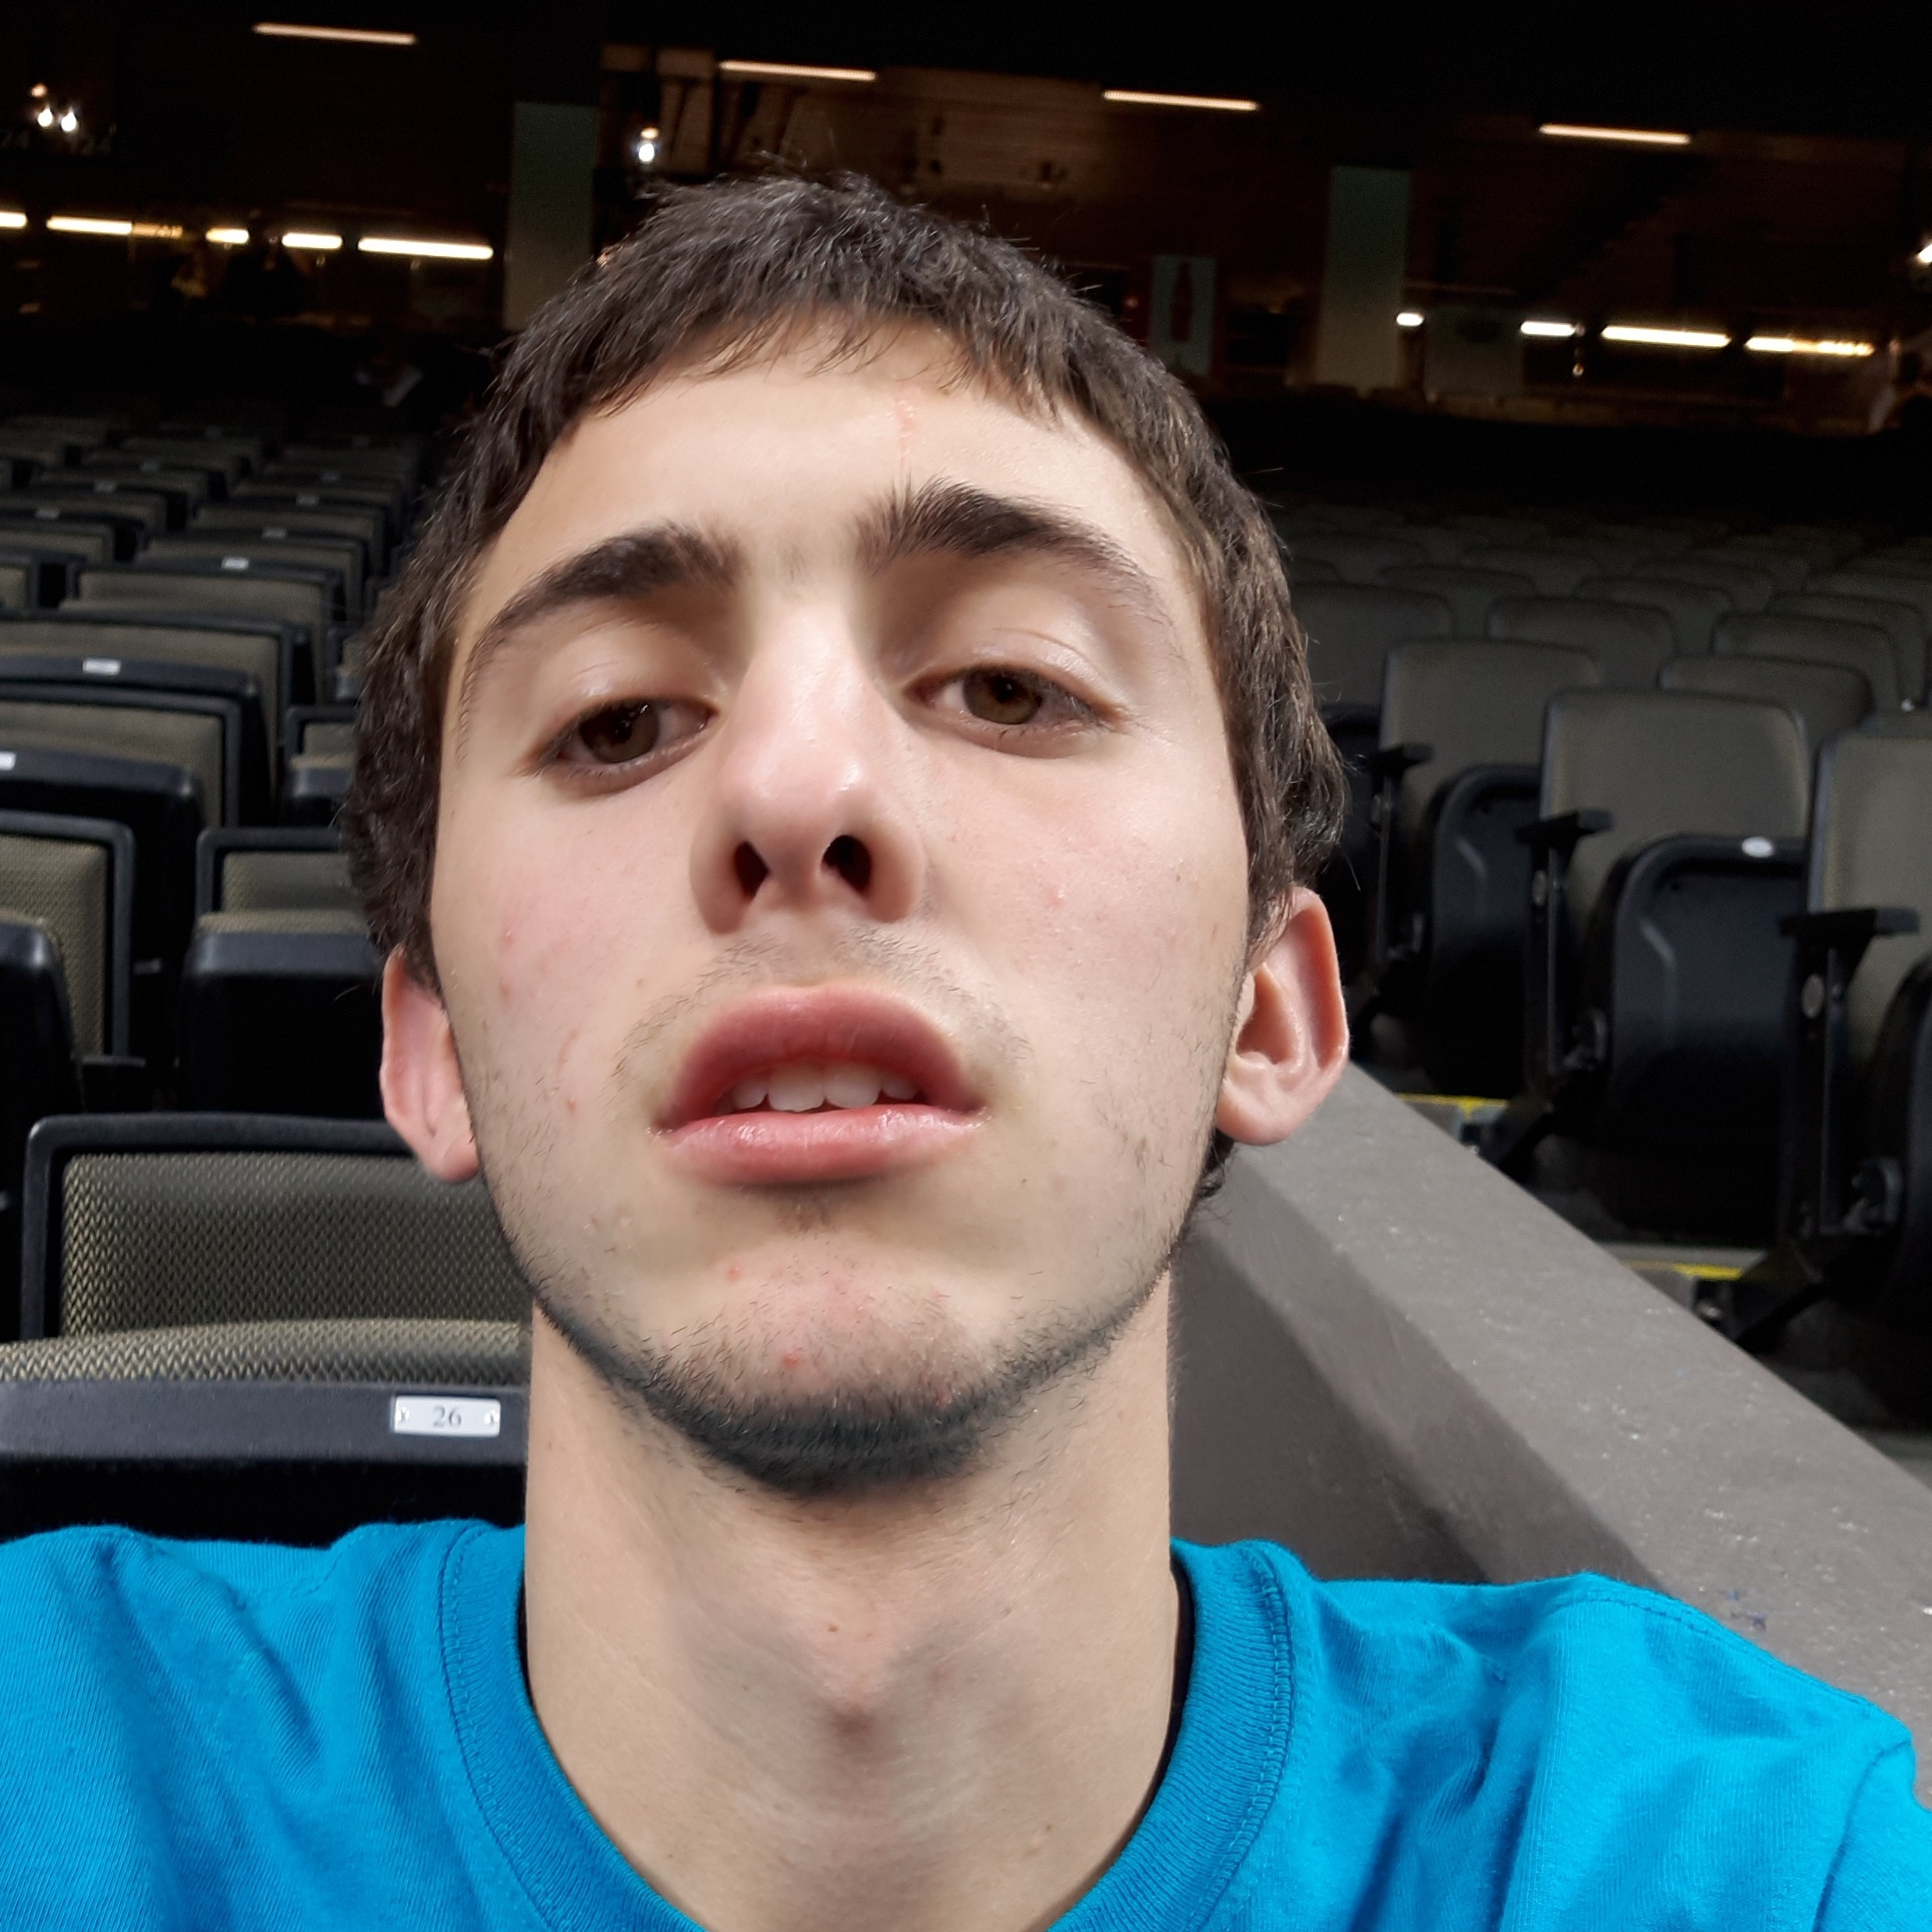 Video Call with Tyler vadell19